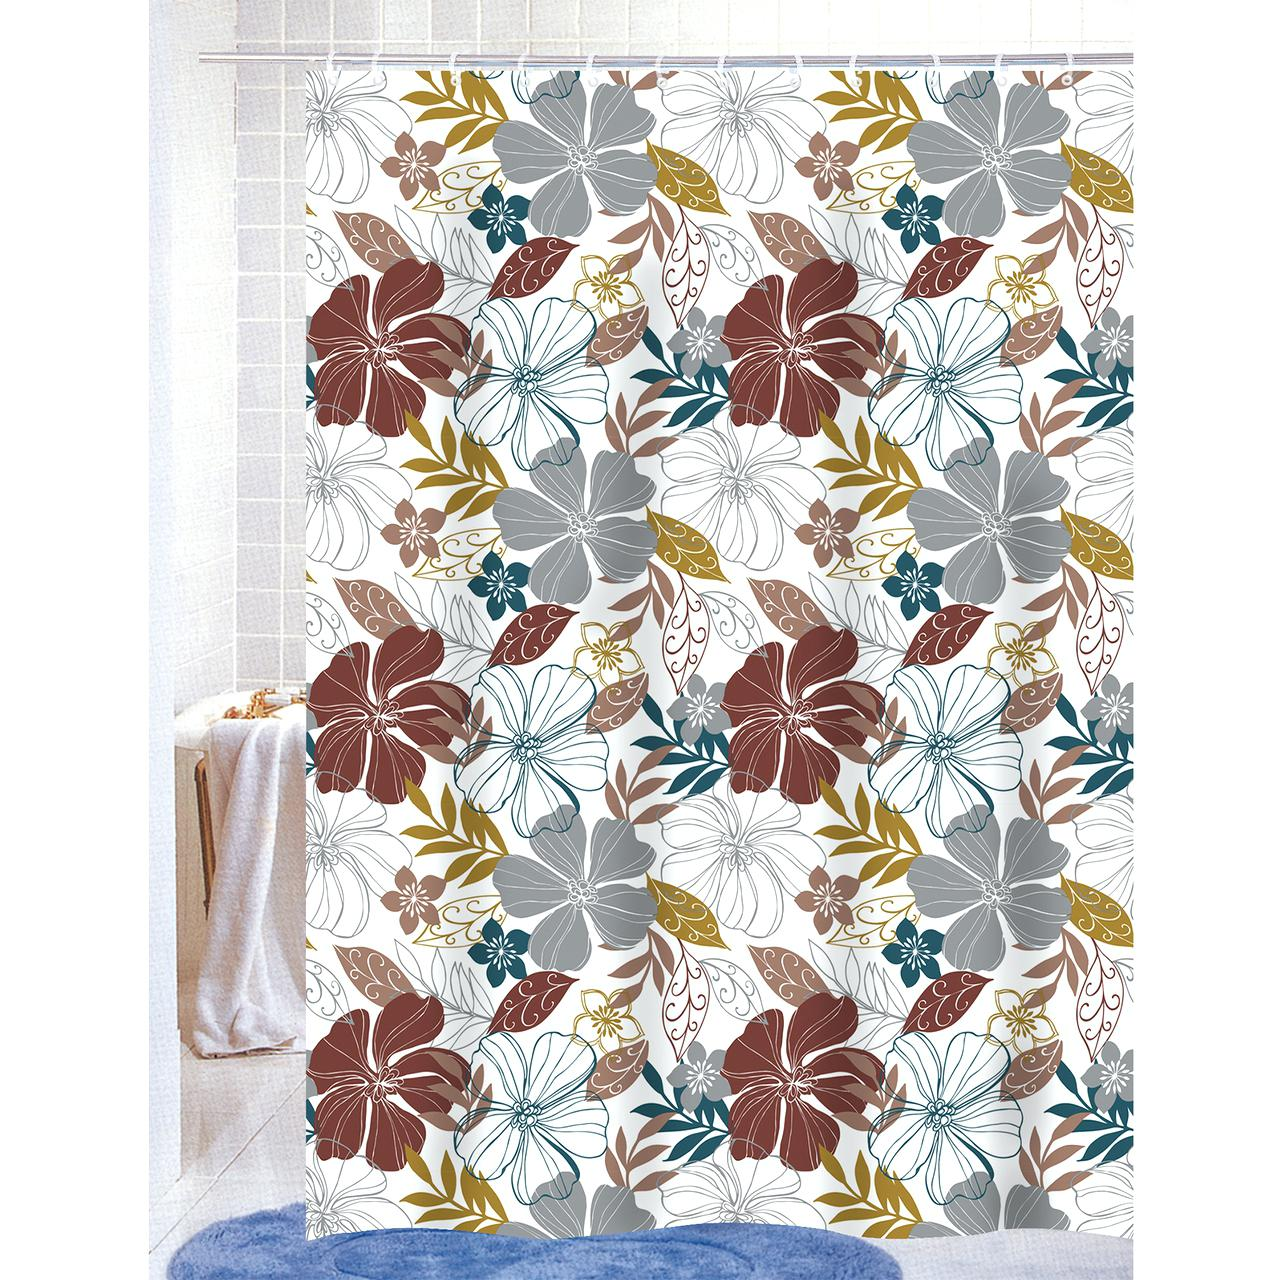 Black Floral Shower Curtain | Cute Cheap Shower Curtains | Floral Shower Curtain